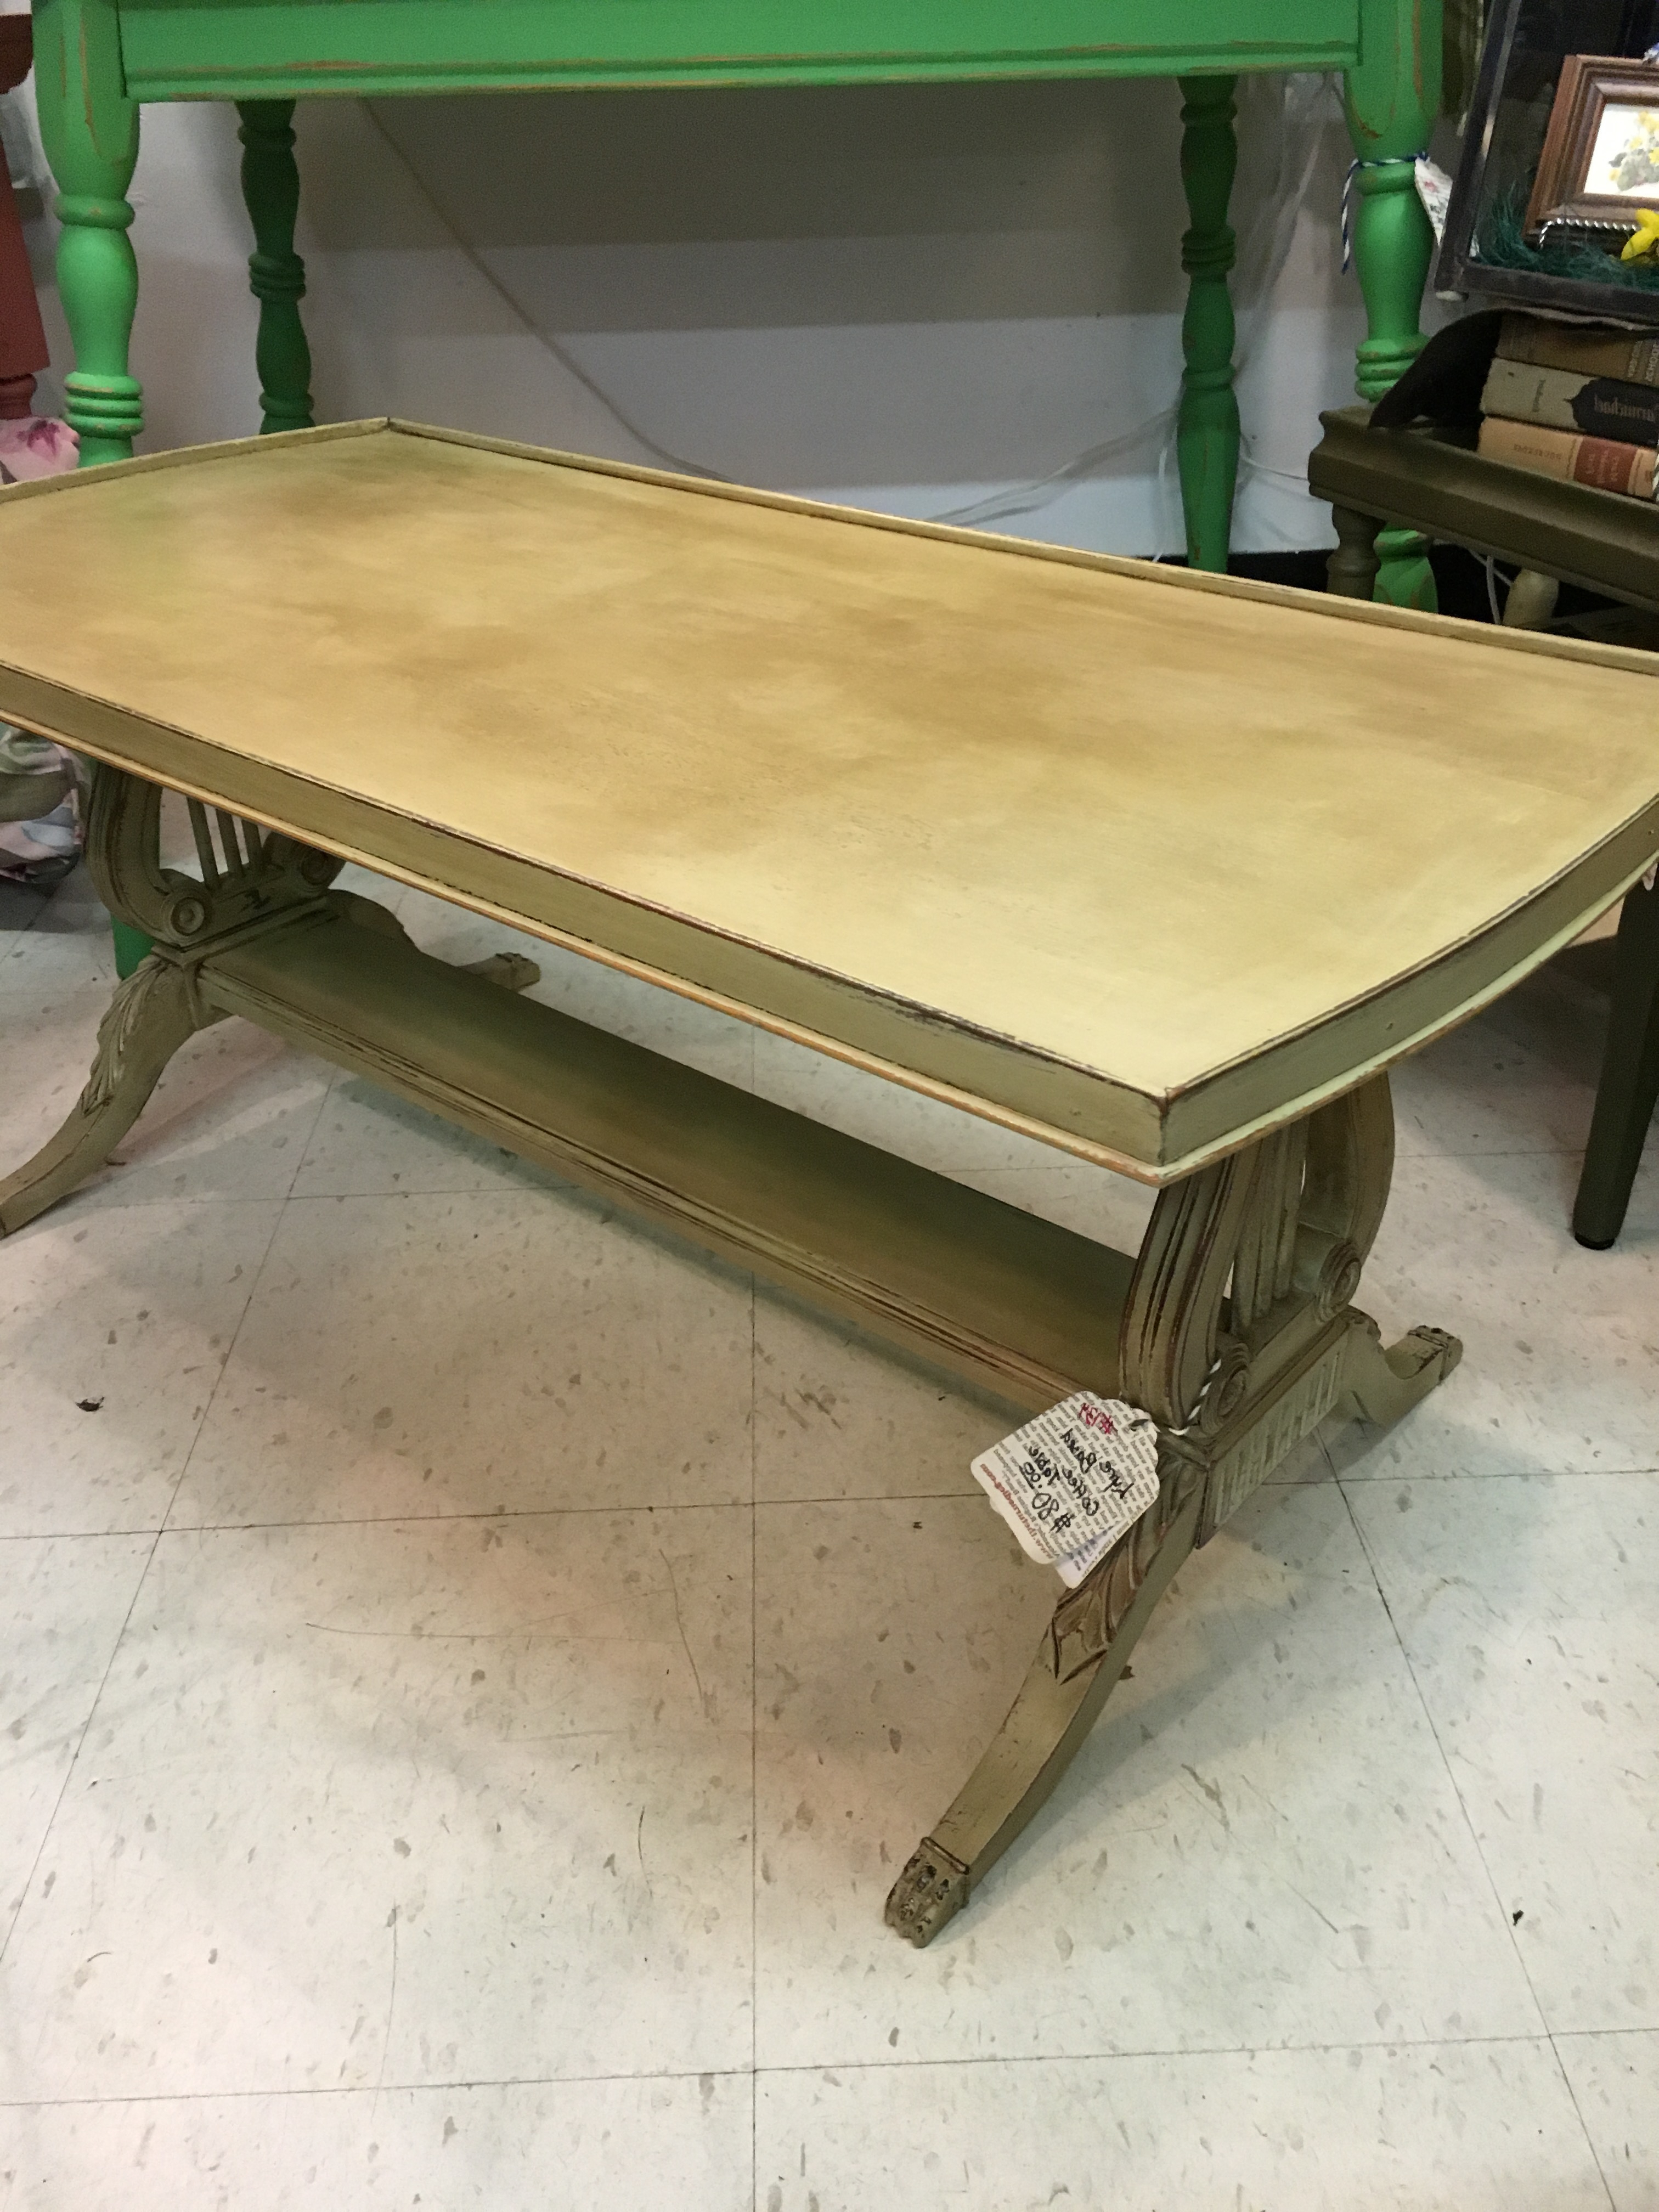 Lyre Coffee Tables Intended For Most Popular Lyre Based Coffee Table $80 Sold – The Turned Leg (View 18 of 20)